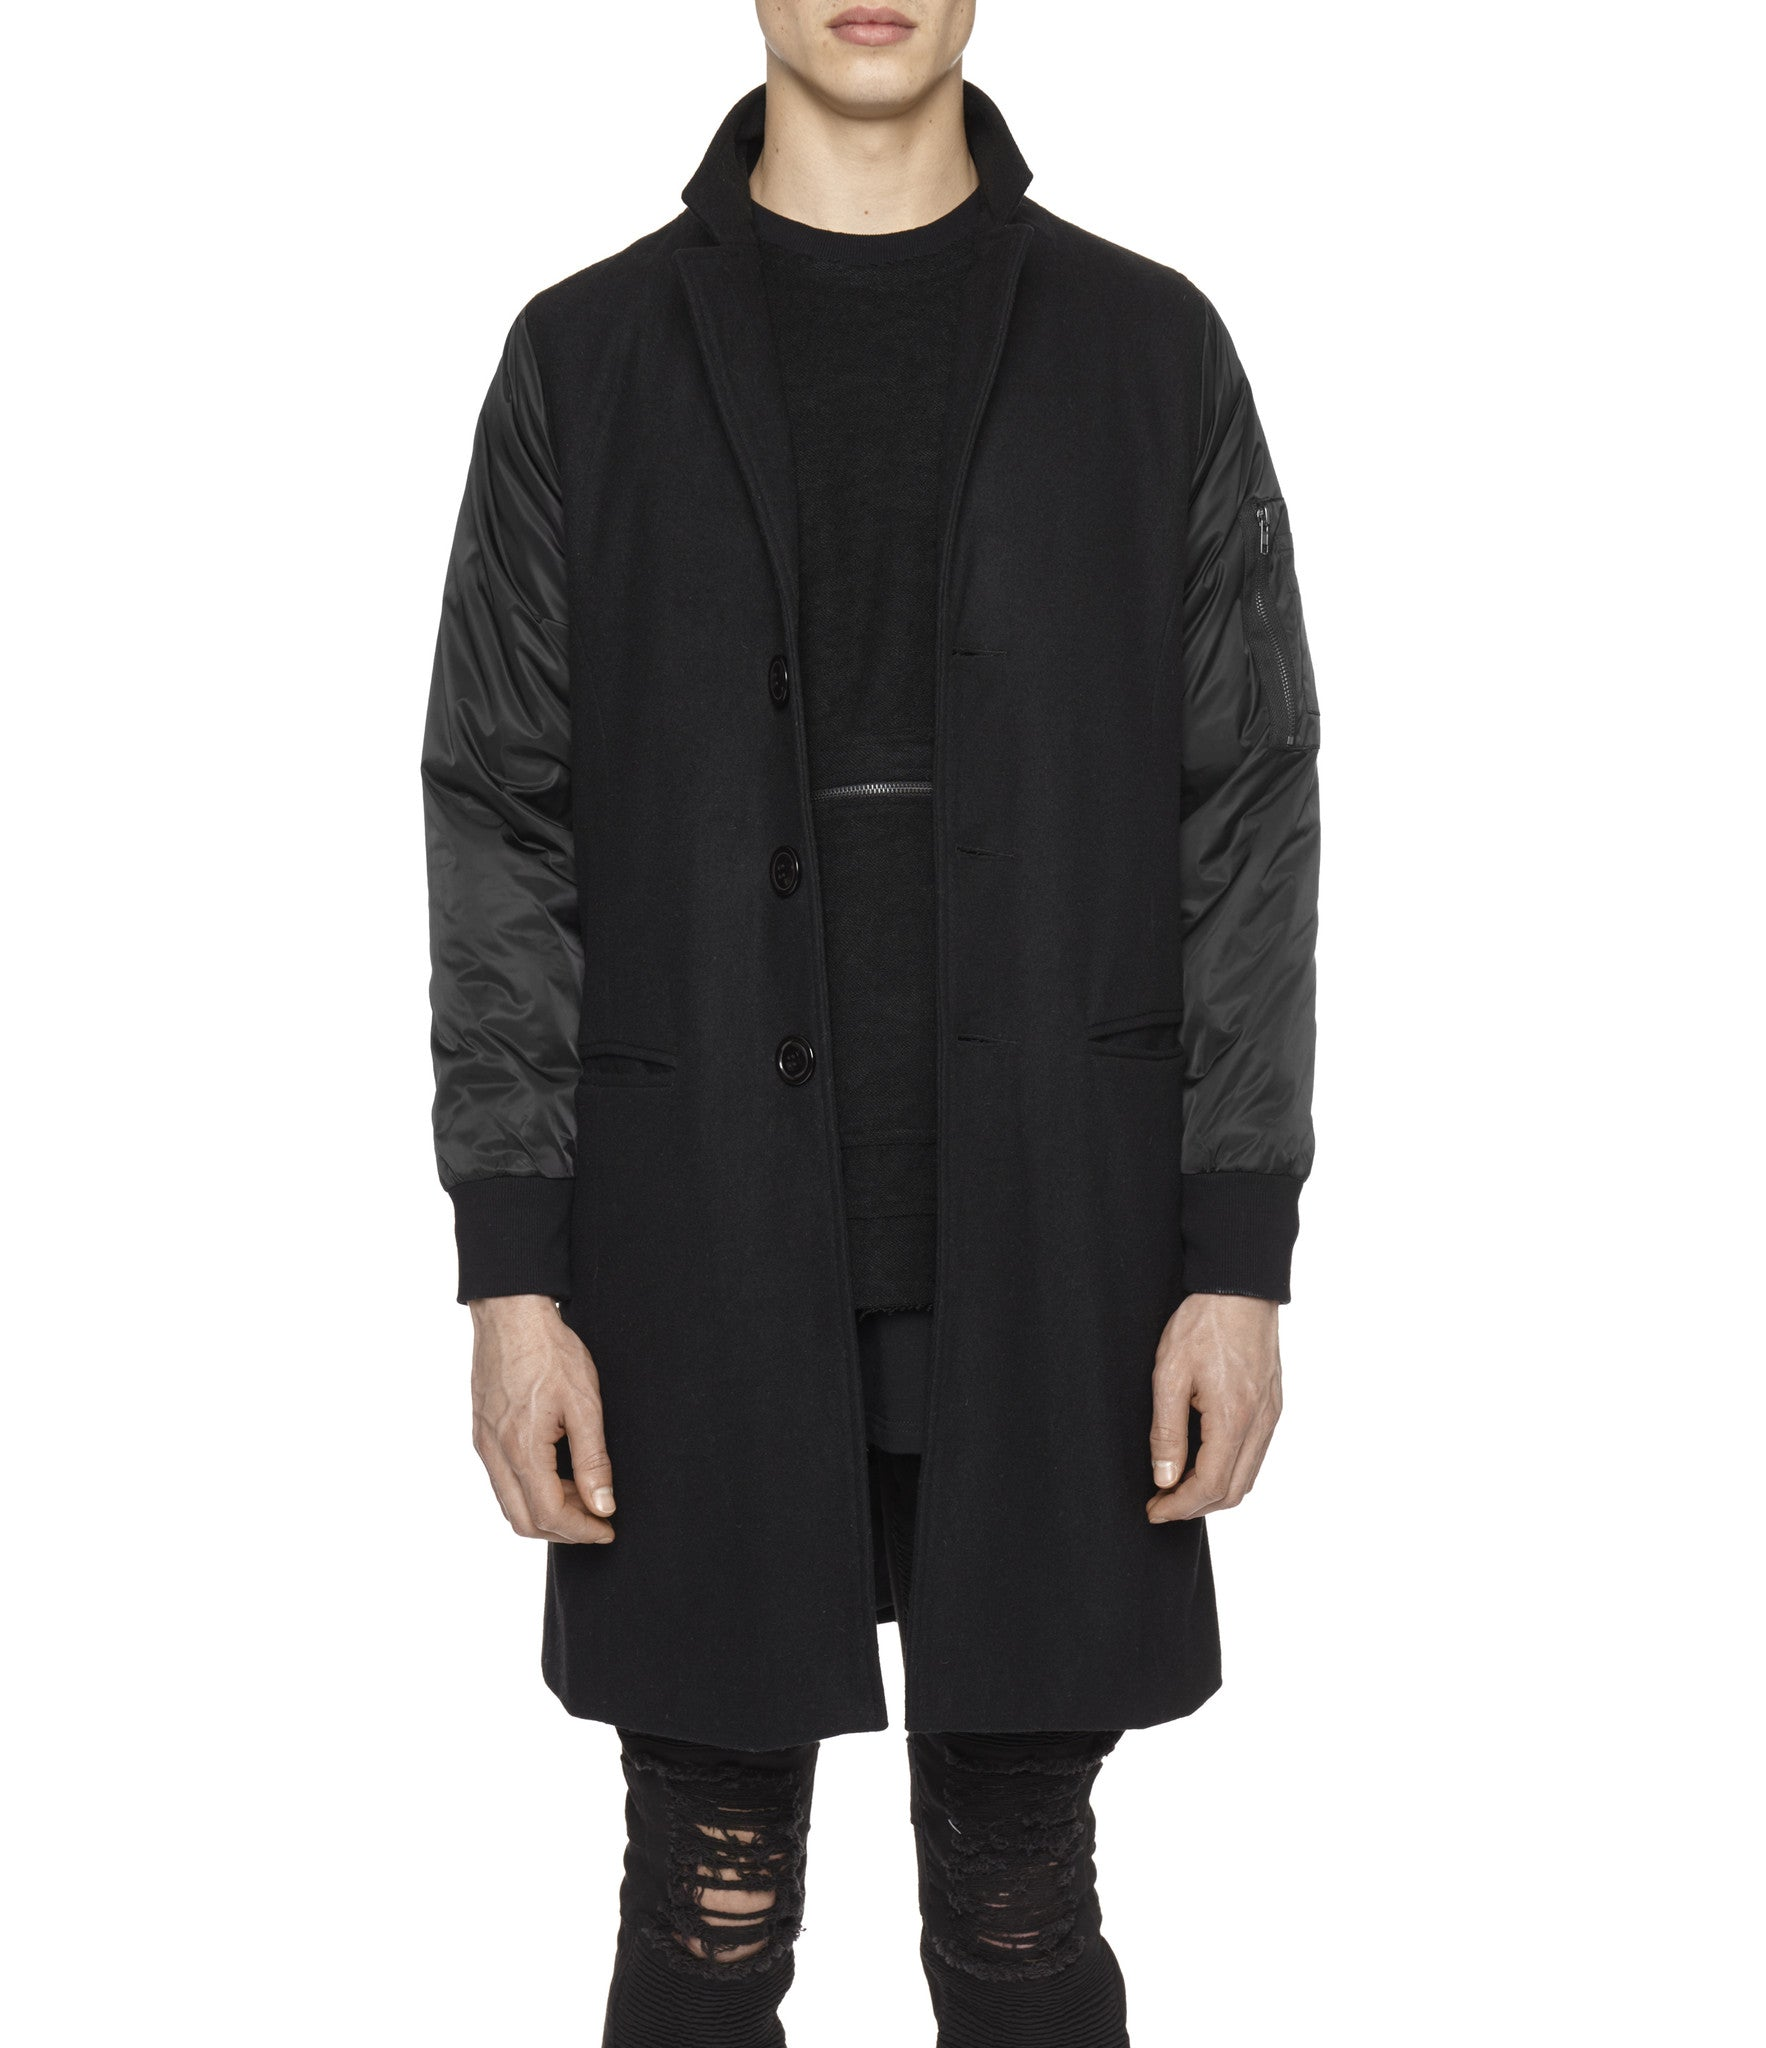 JK215 Hybrid Overcoat - Black - underated london - underatedco - 1